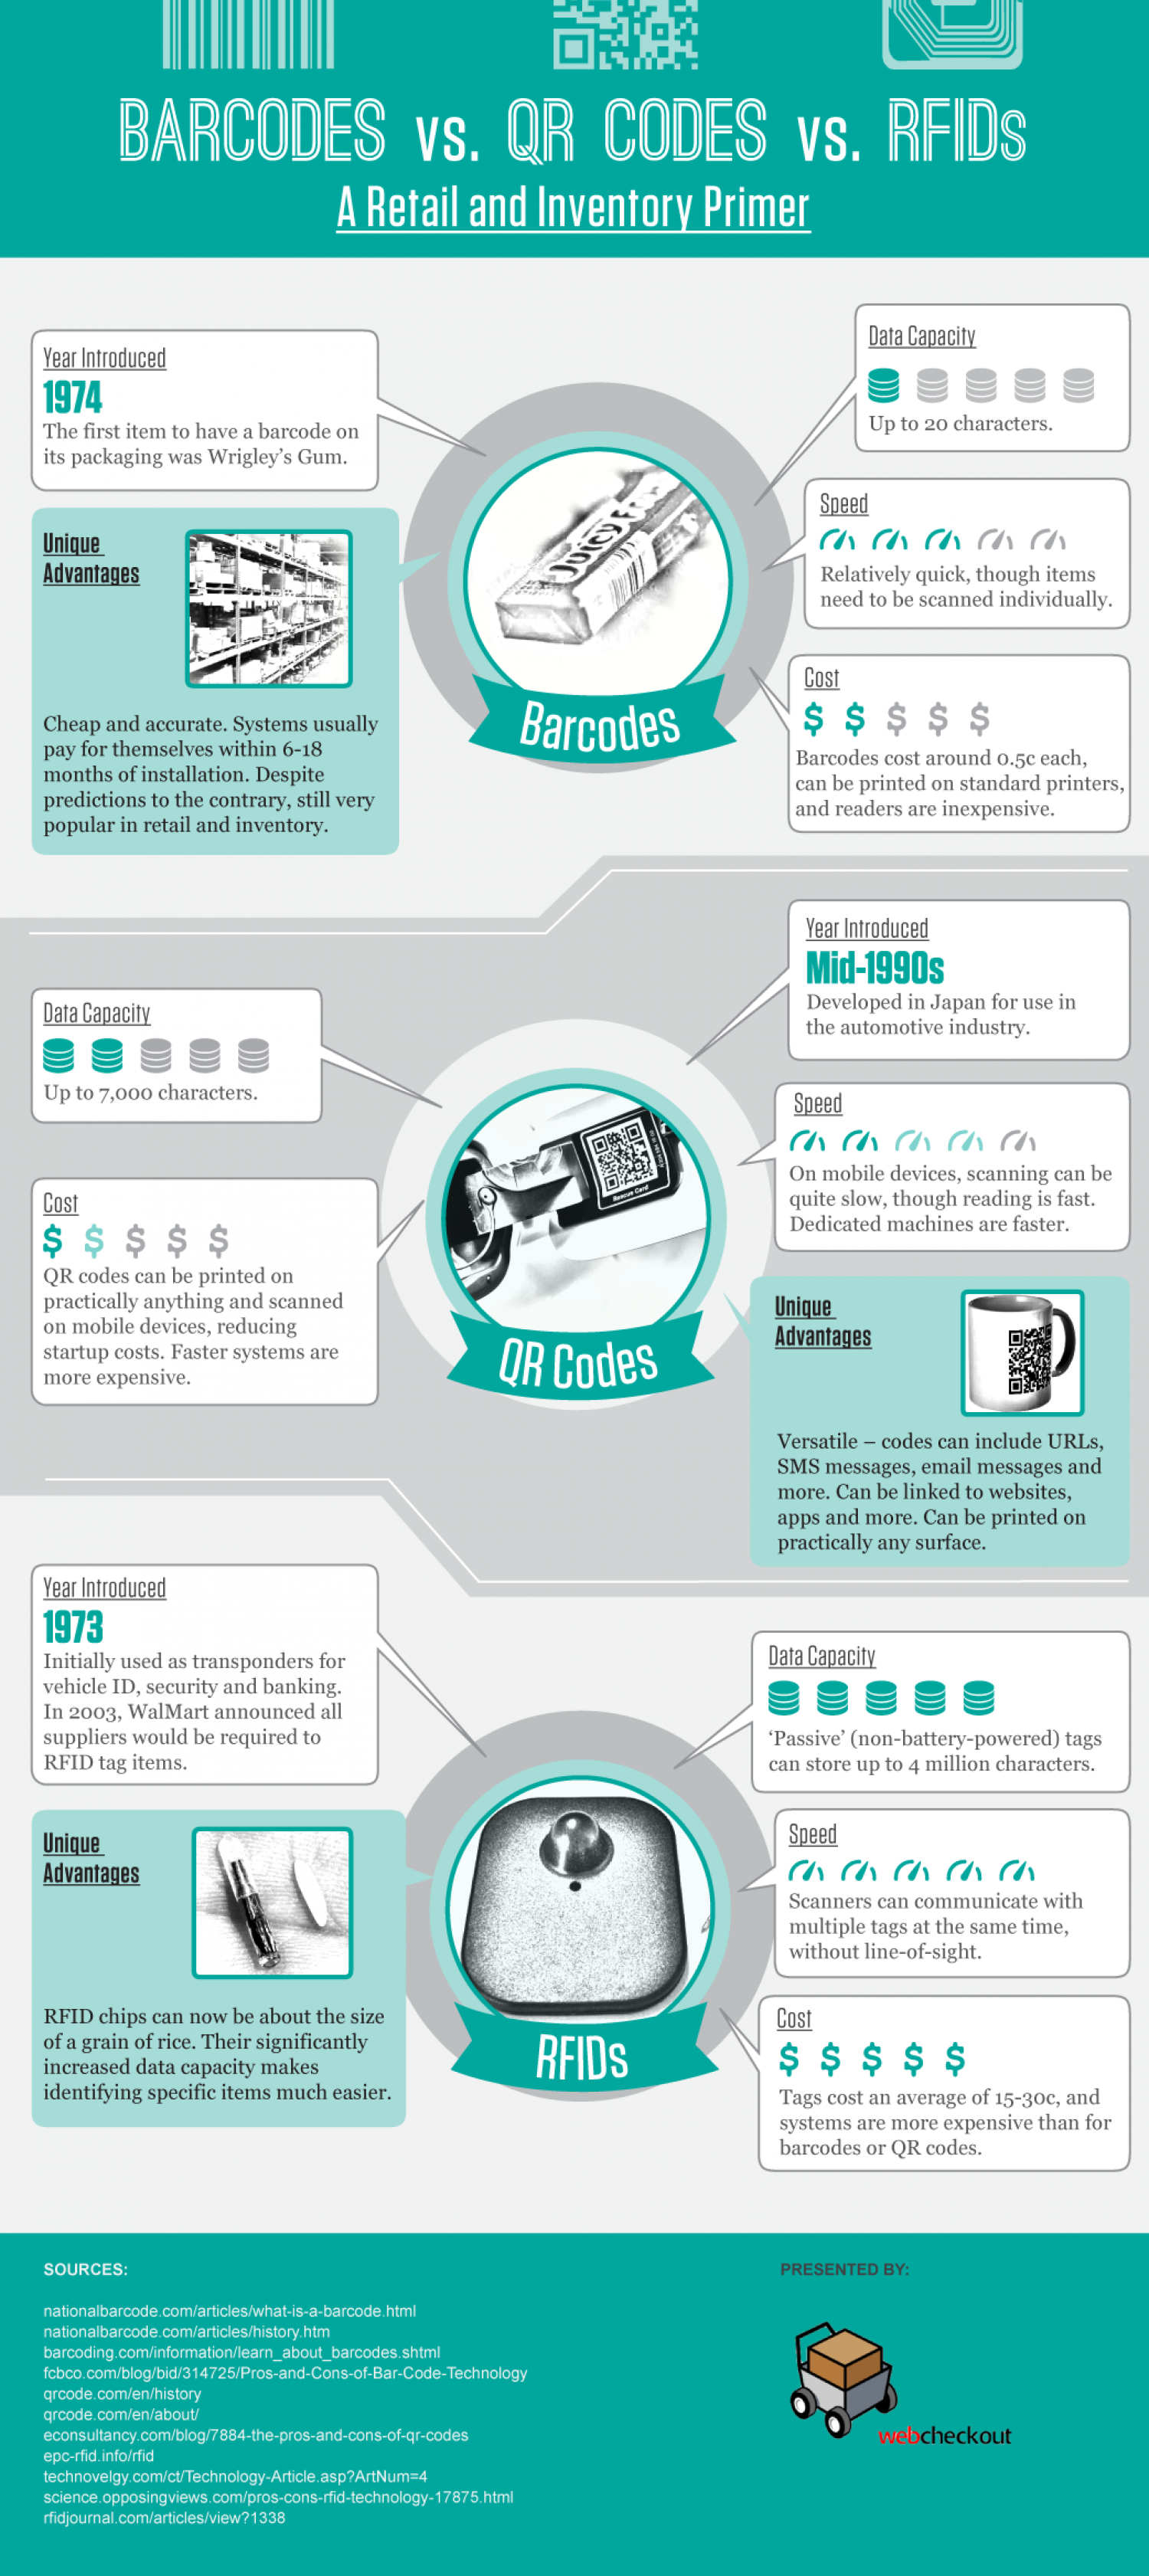 Asset Tracking: RFIDs, Barcodes or QR Codes? Infographic